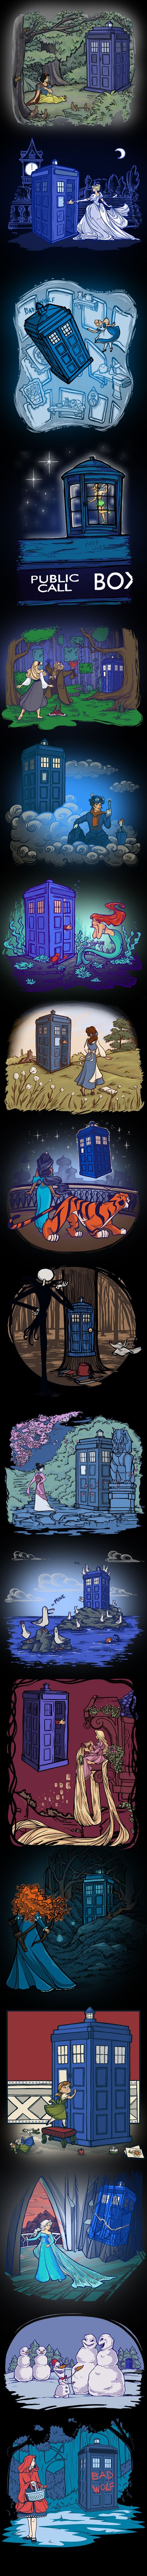 Disney meets the Tardis                                                                                                                                                                                 More